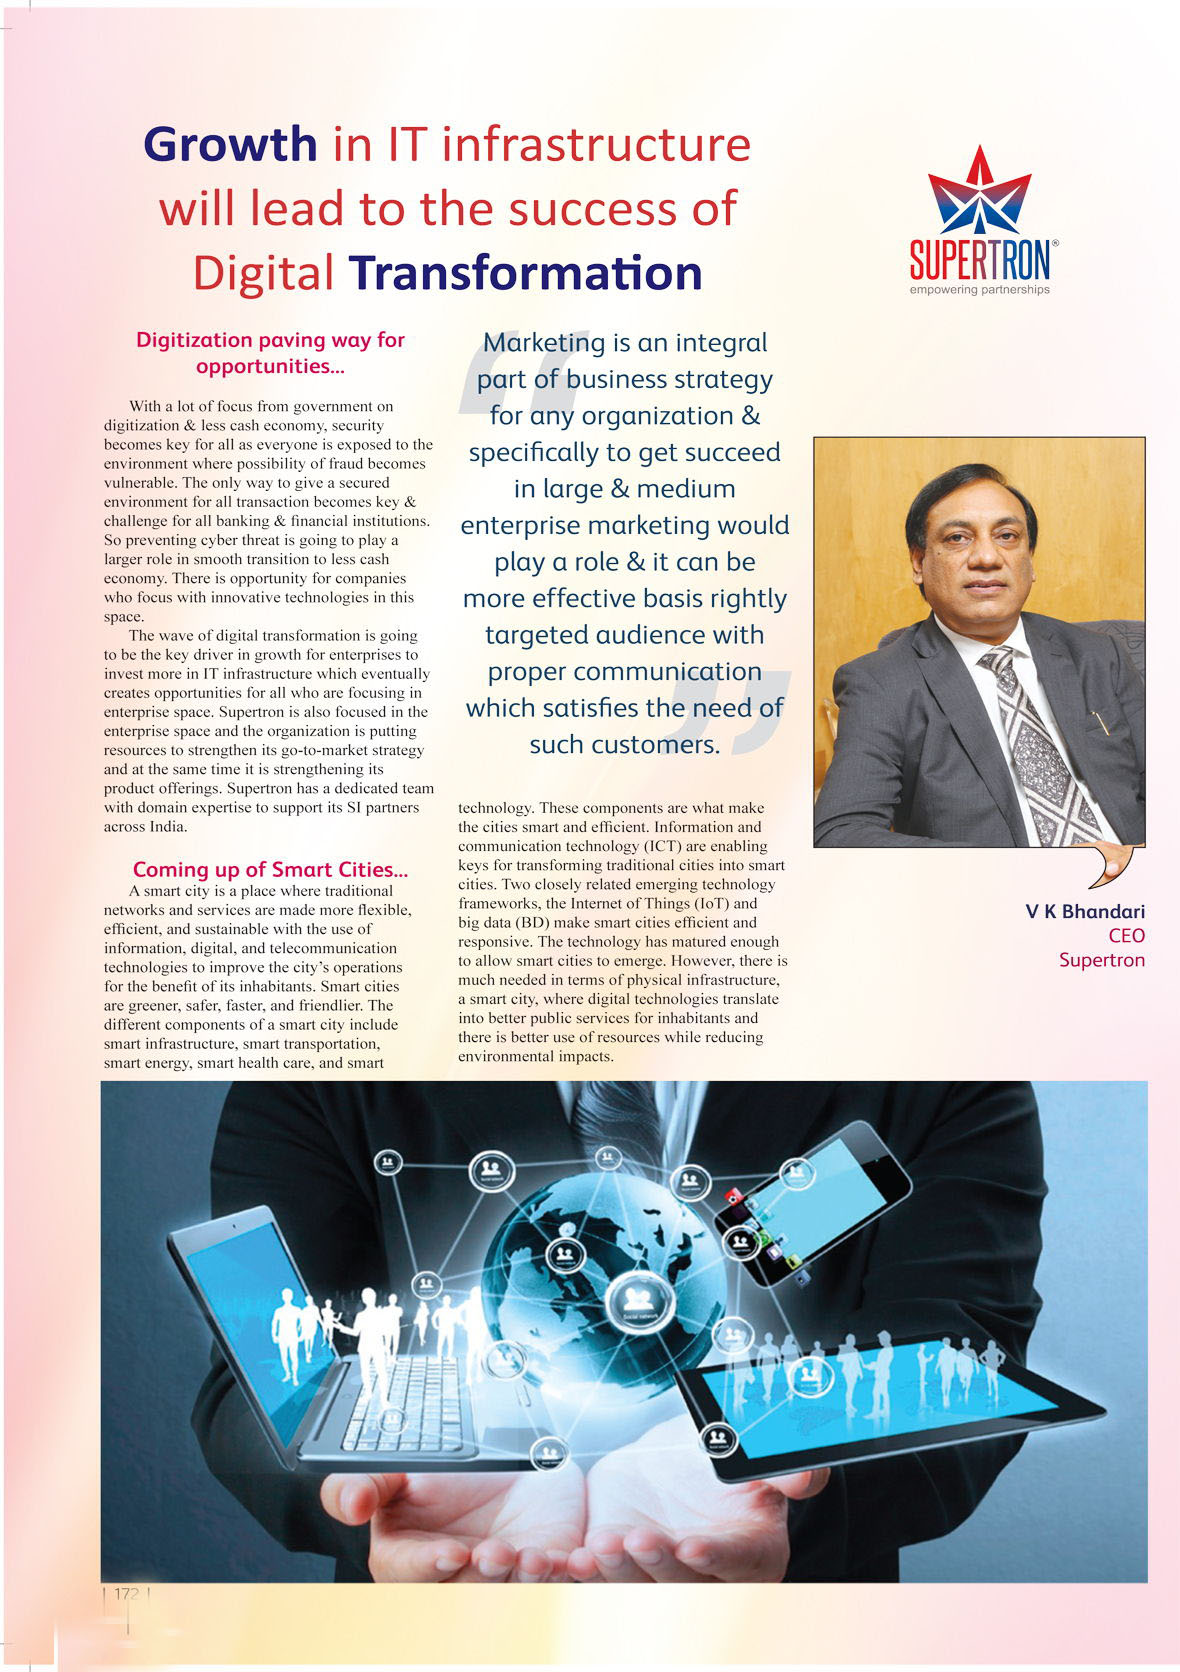 Supertron  : Growth in IT infrastructure will lead to the success of Digital Transformation